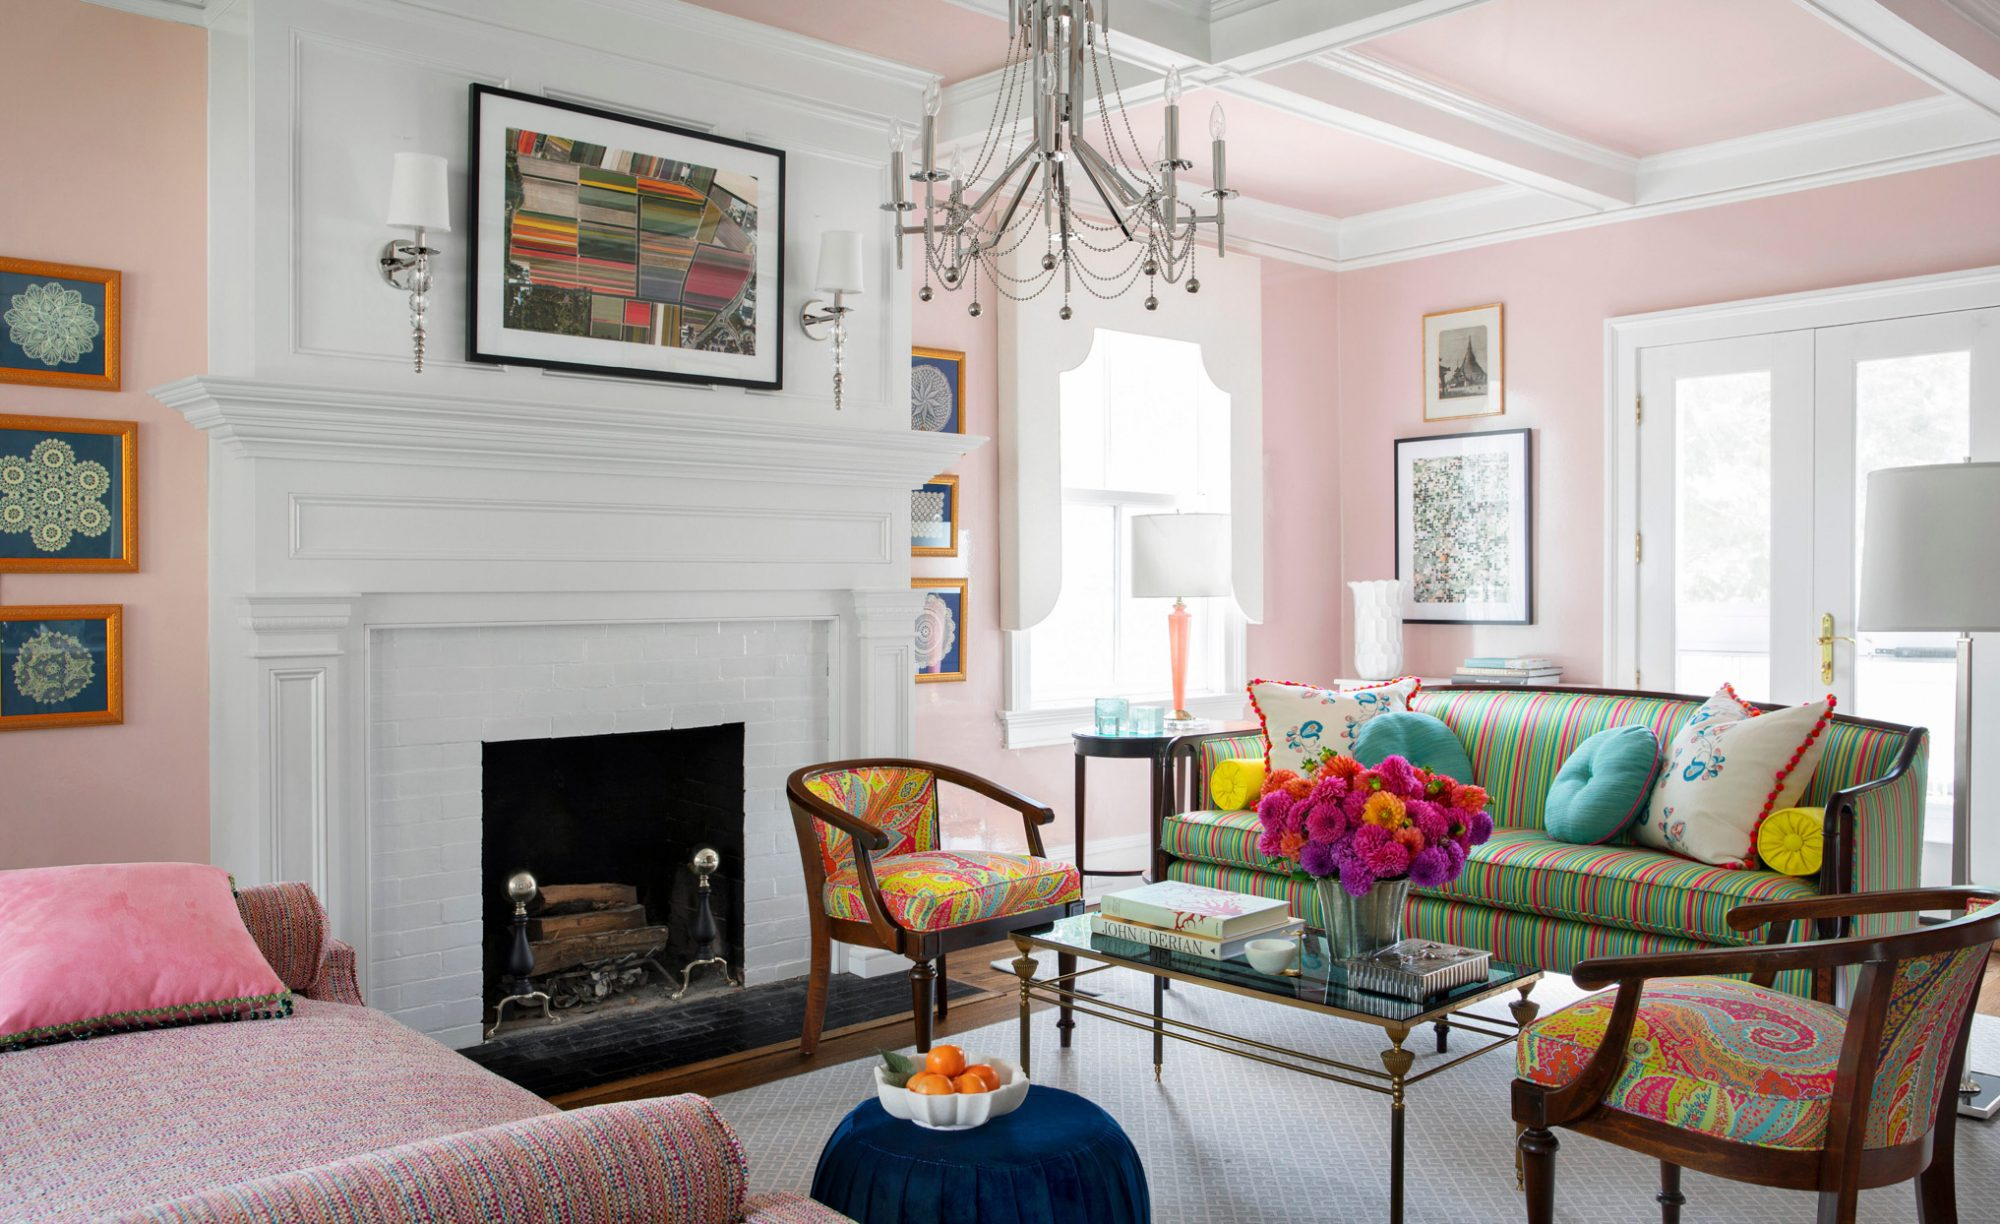 sitting room with pink walls and colorful furniture